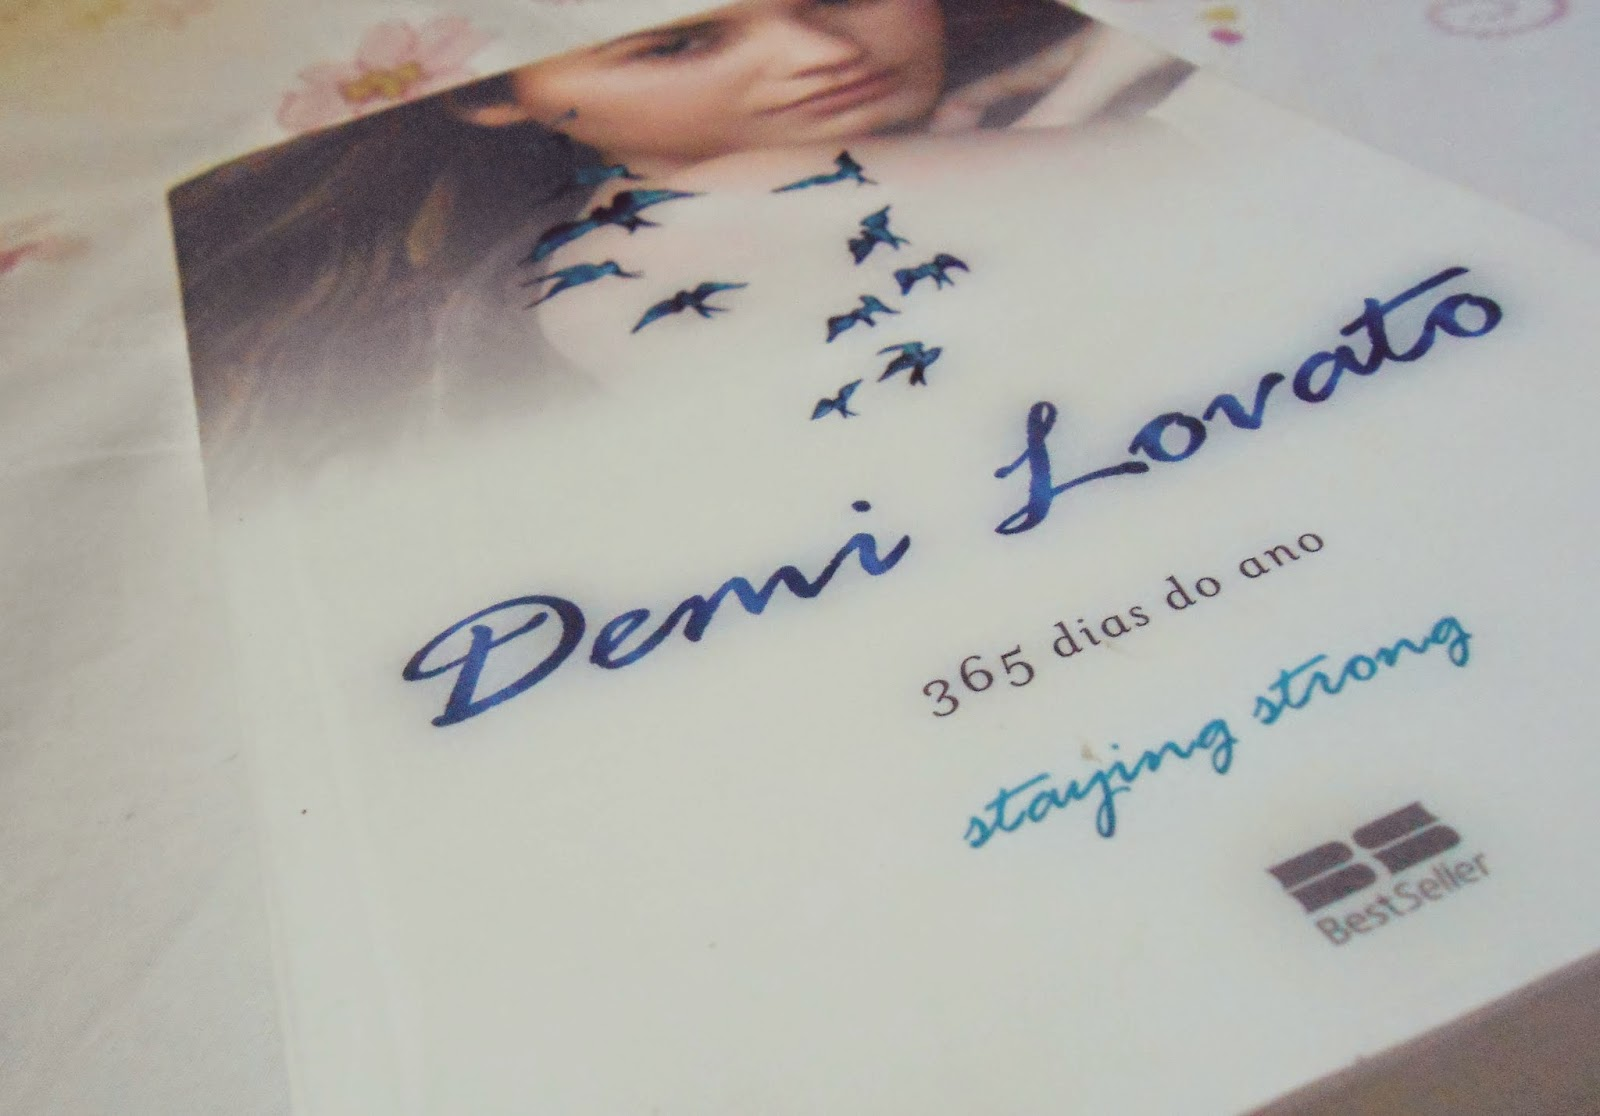 Resenha literária: Staying Strong